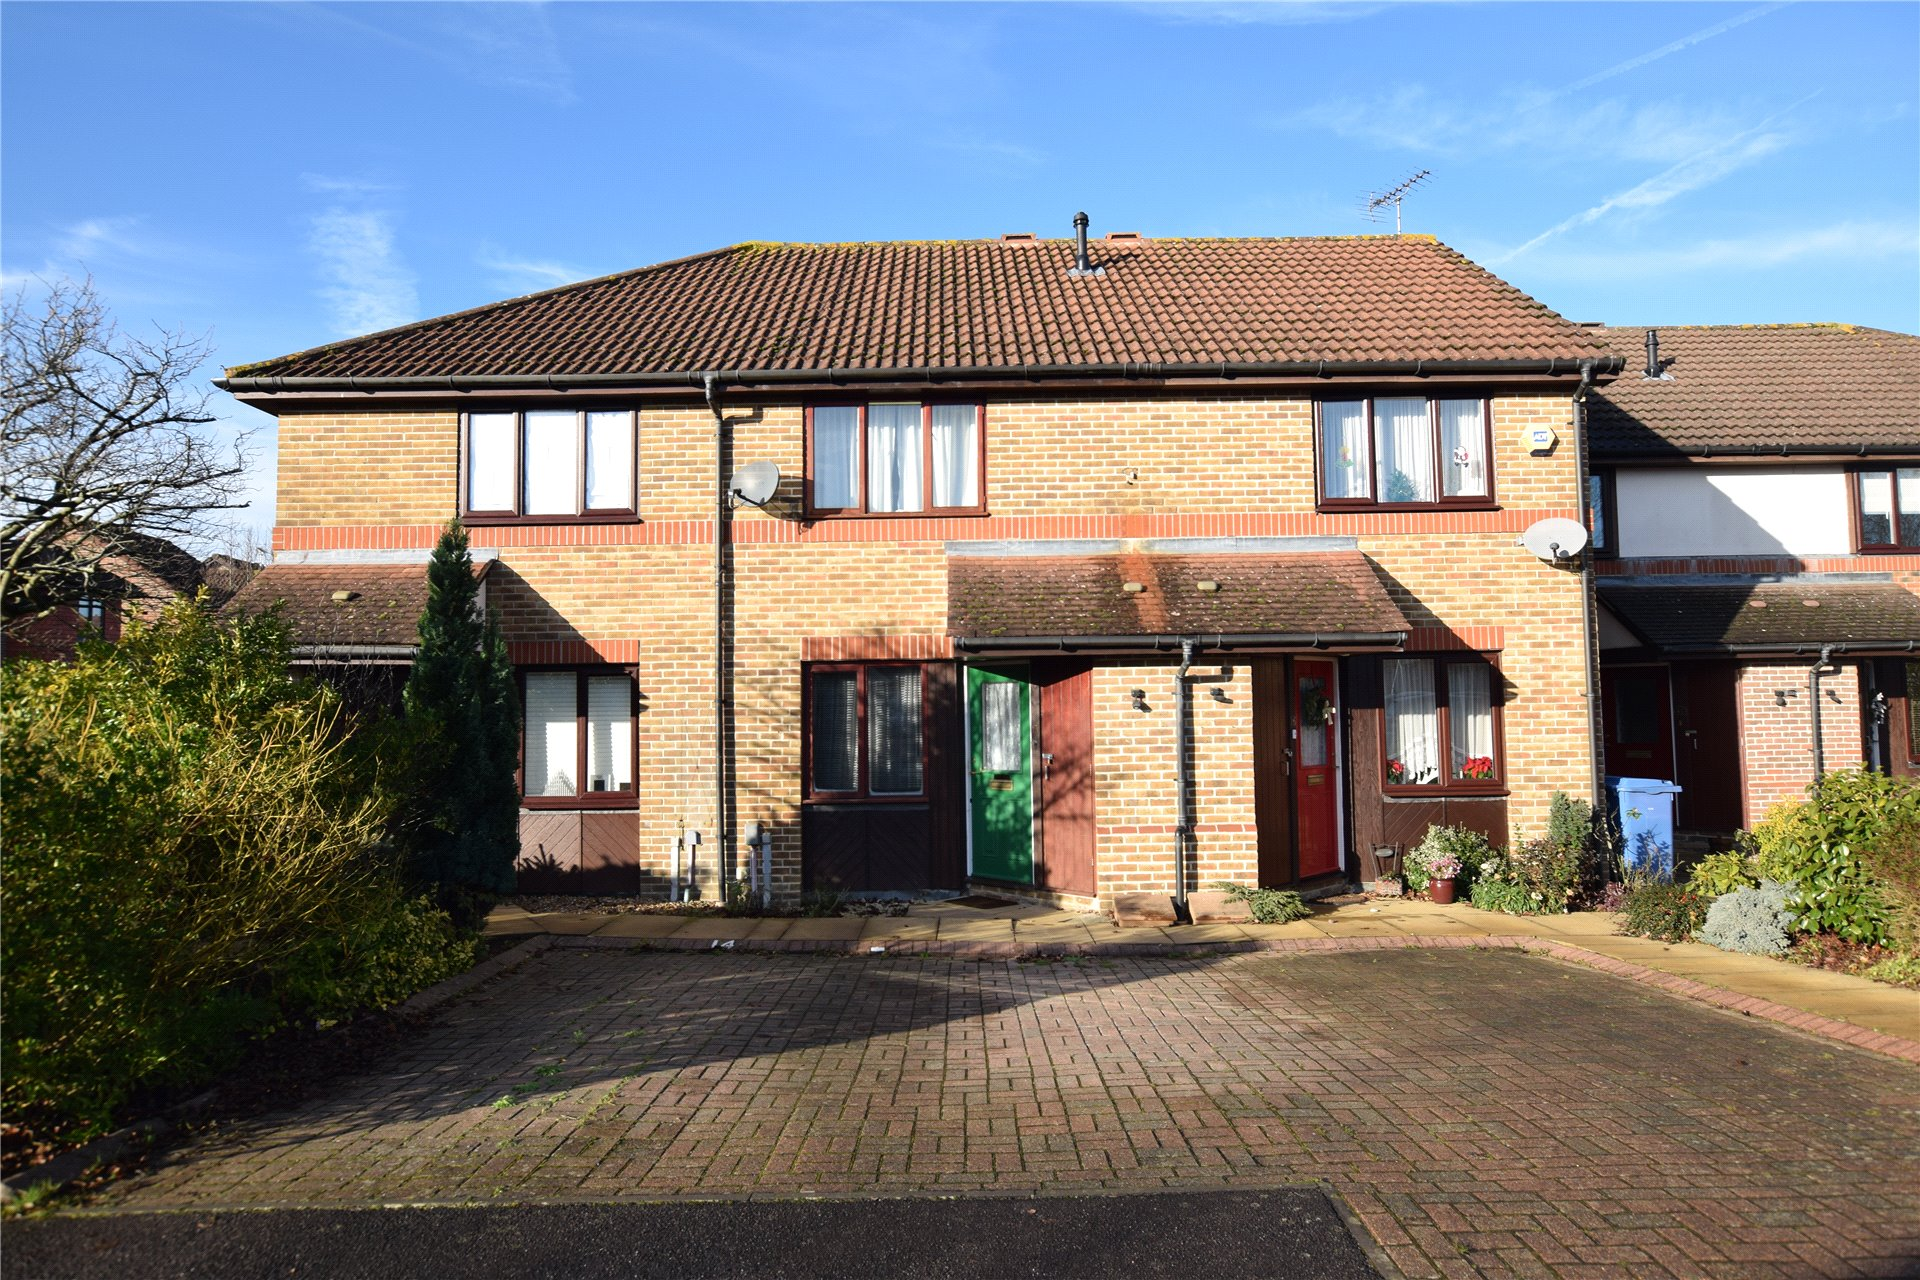 2 Bedrooms Terraced House for sale in Teresa Vale, Warfield, Berkshire, RG42